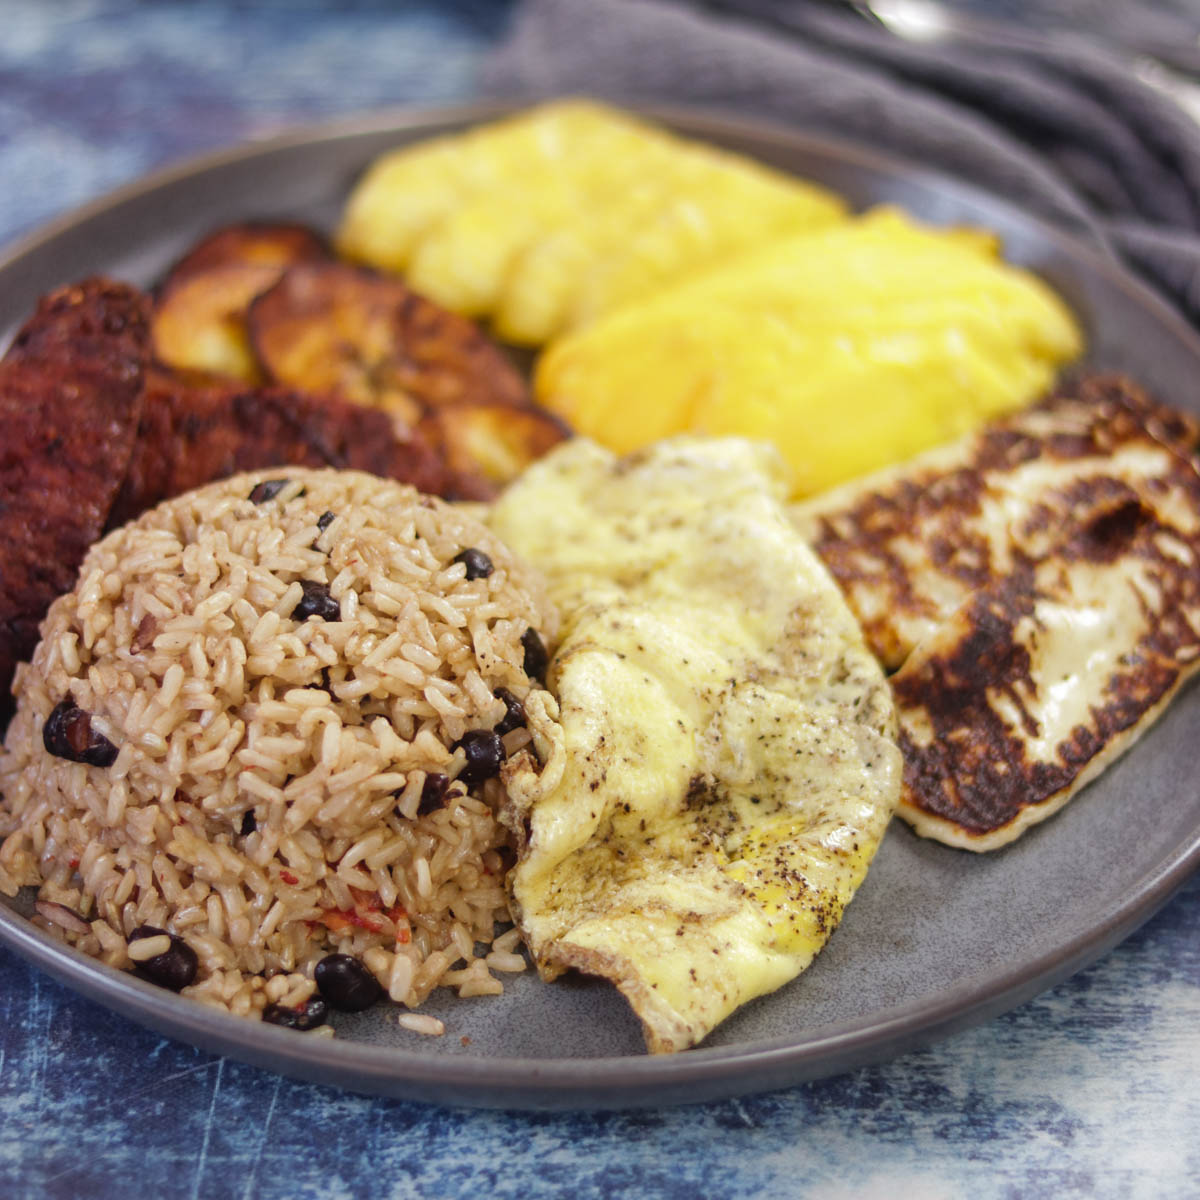 Gallo Pinto - Costa Rican Rice & Bean Breakfast Platter is a hearty and filling breakfast with rice and beans as the centerpiece, accompanied by eggs, cheese, chorizo, plantain, fruit and coffee.